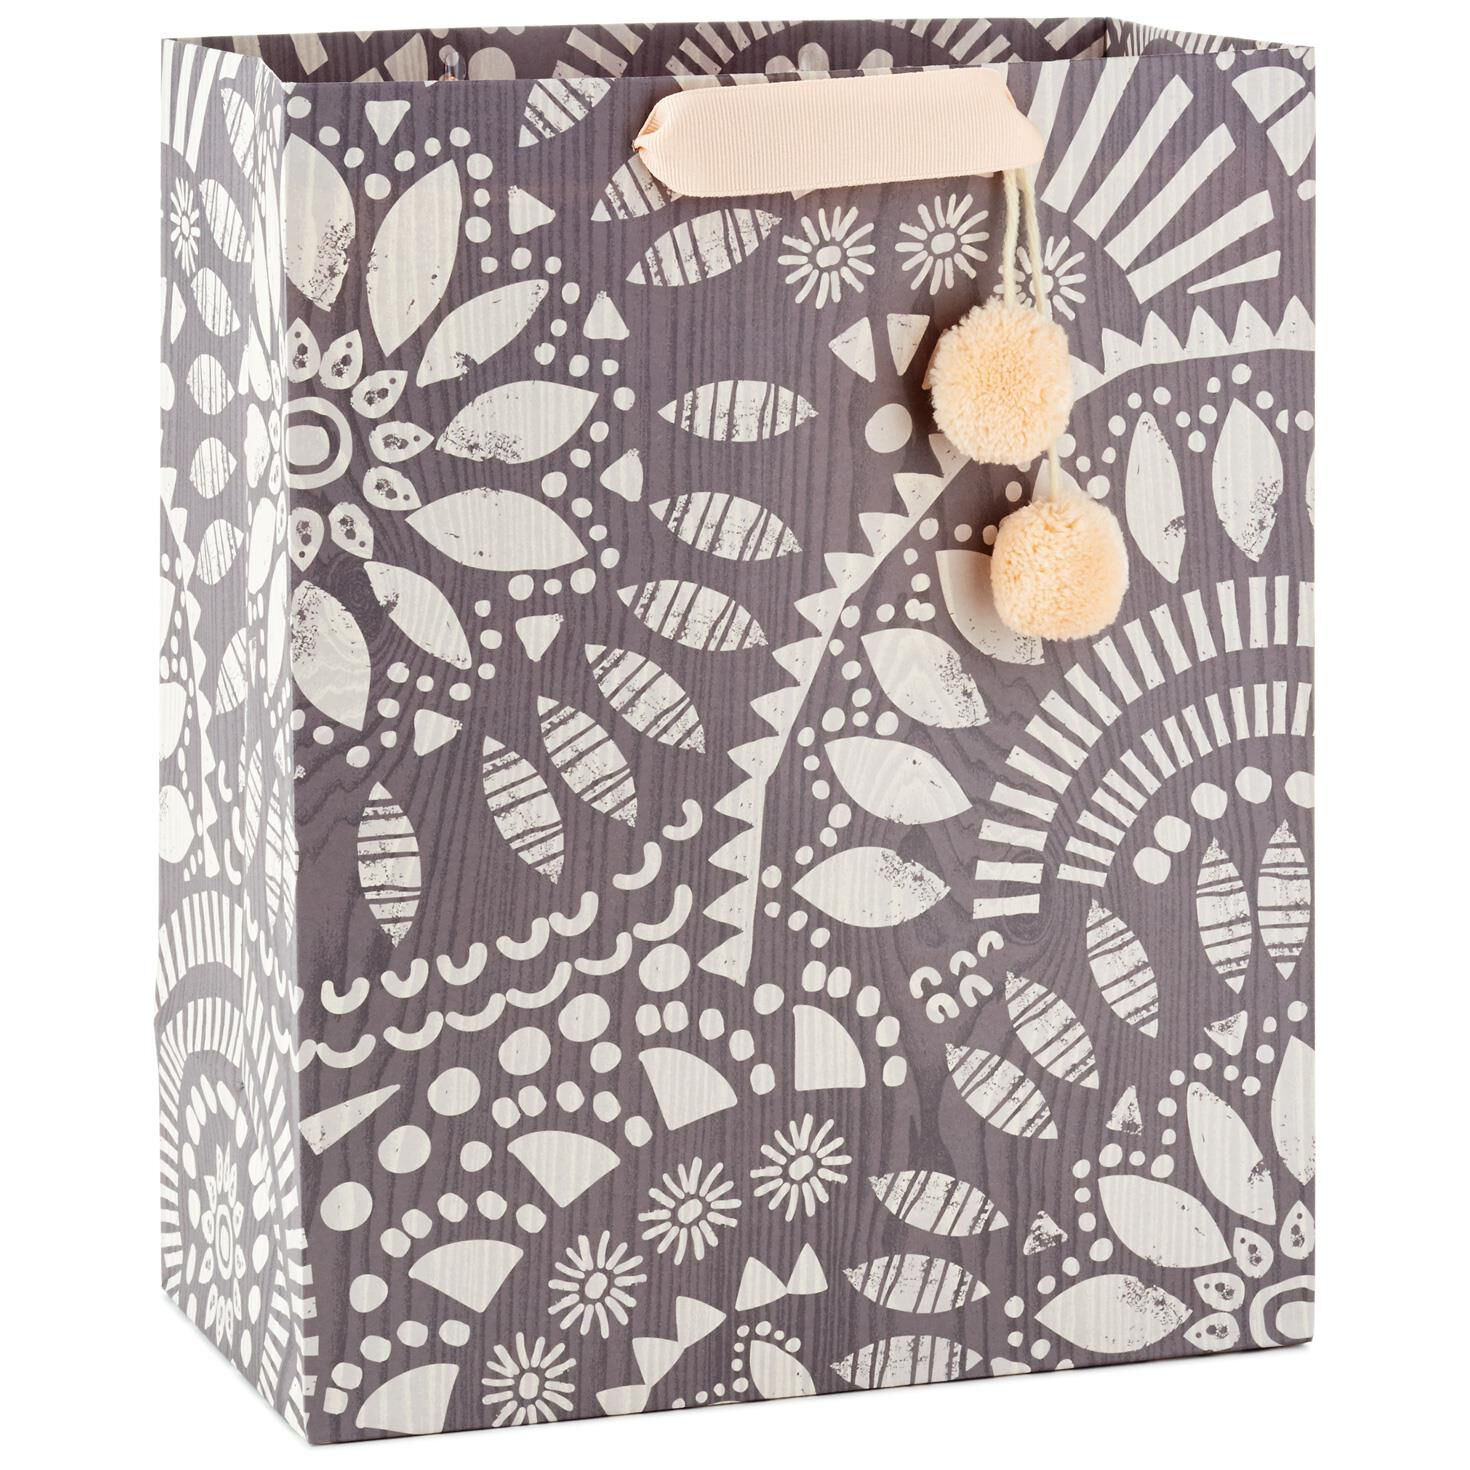 Overlapping Leaf Pattern Large Gift Bag With Pom Poms, 13\